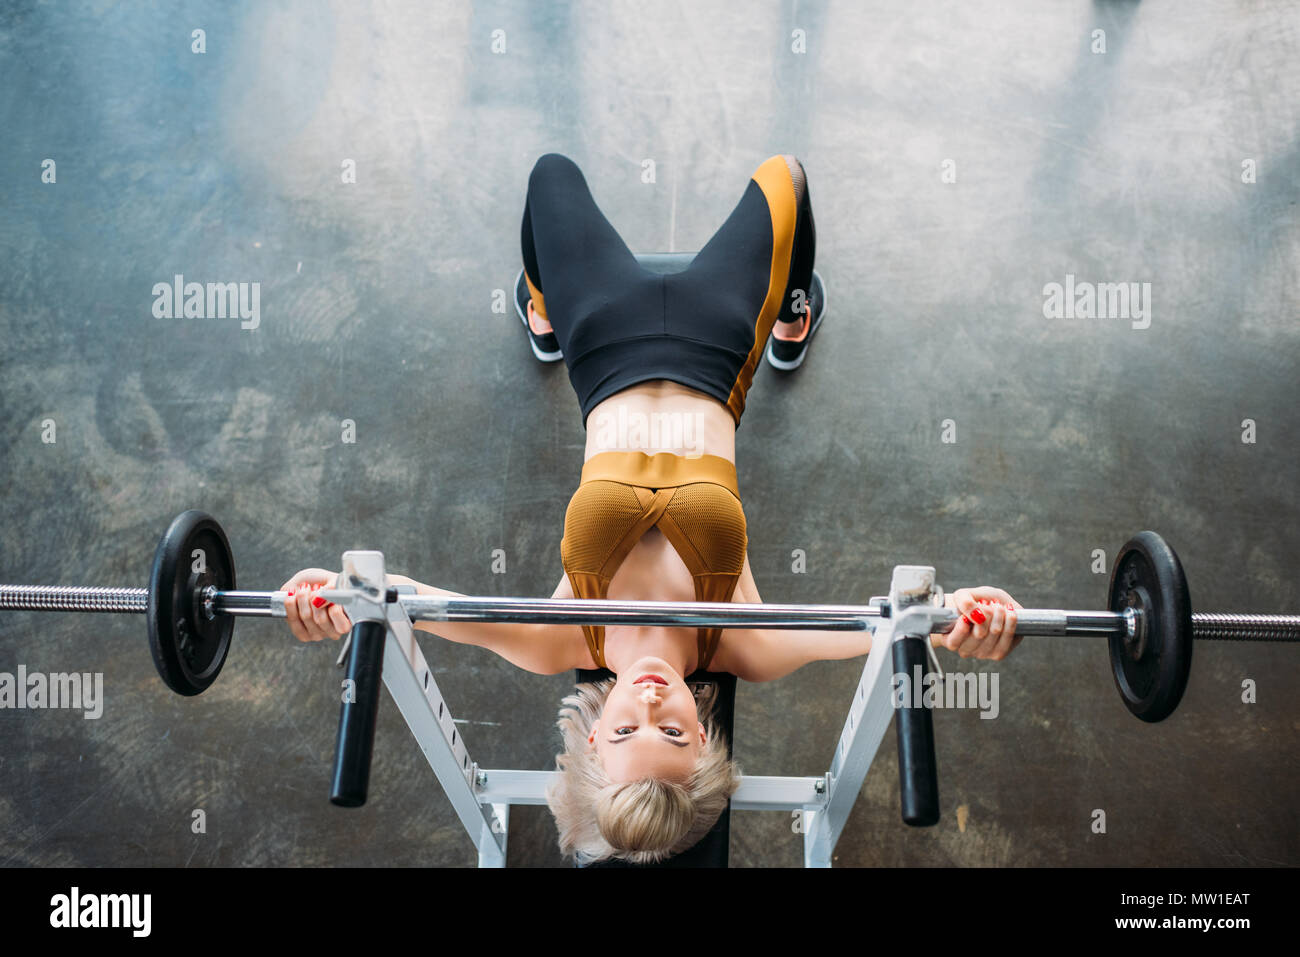 overhead view of young athletic woman weightlifting barbell at gym - Stock Image